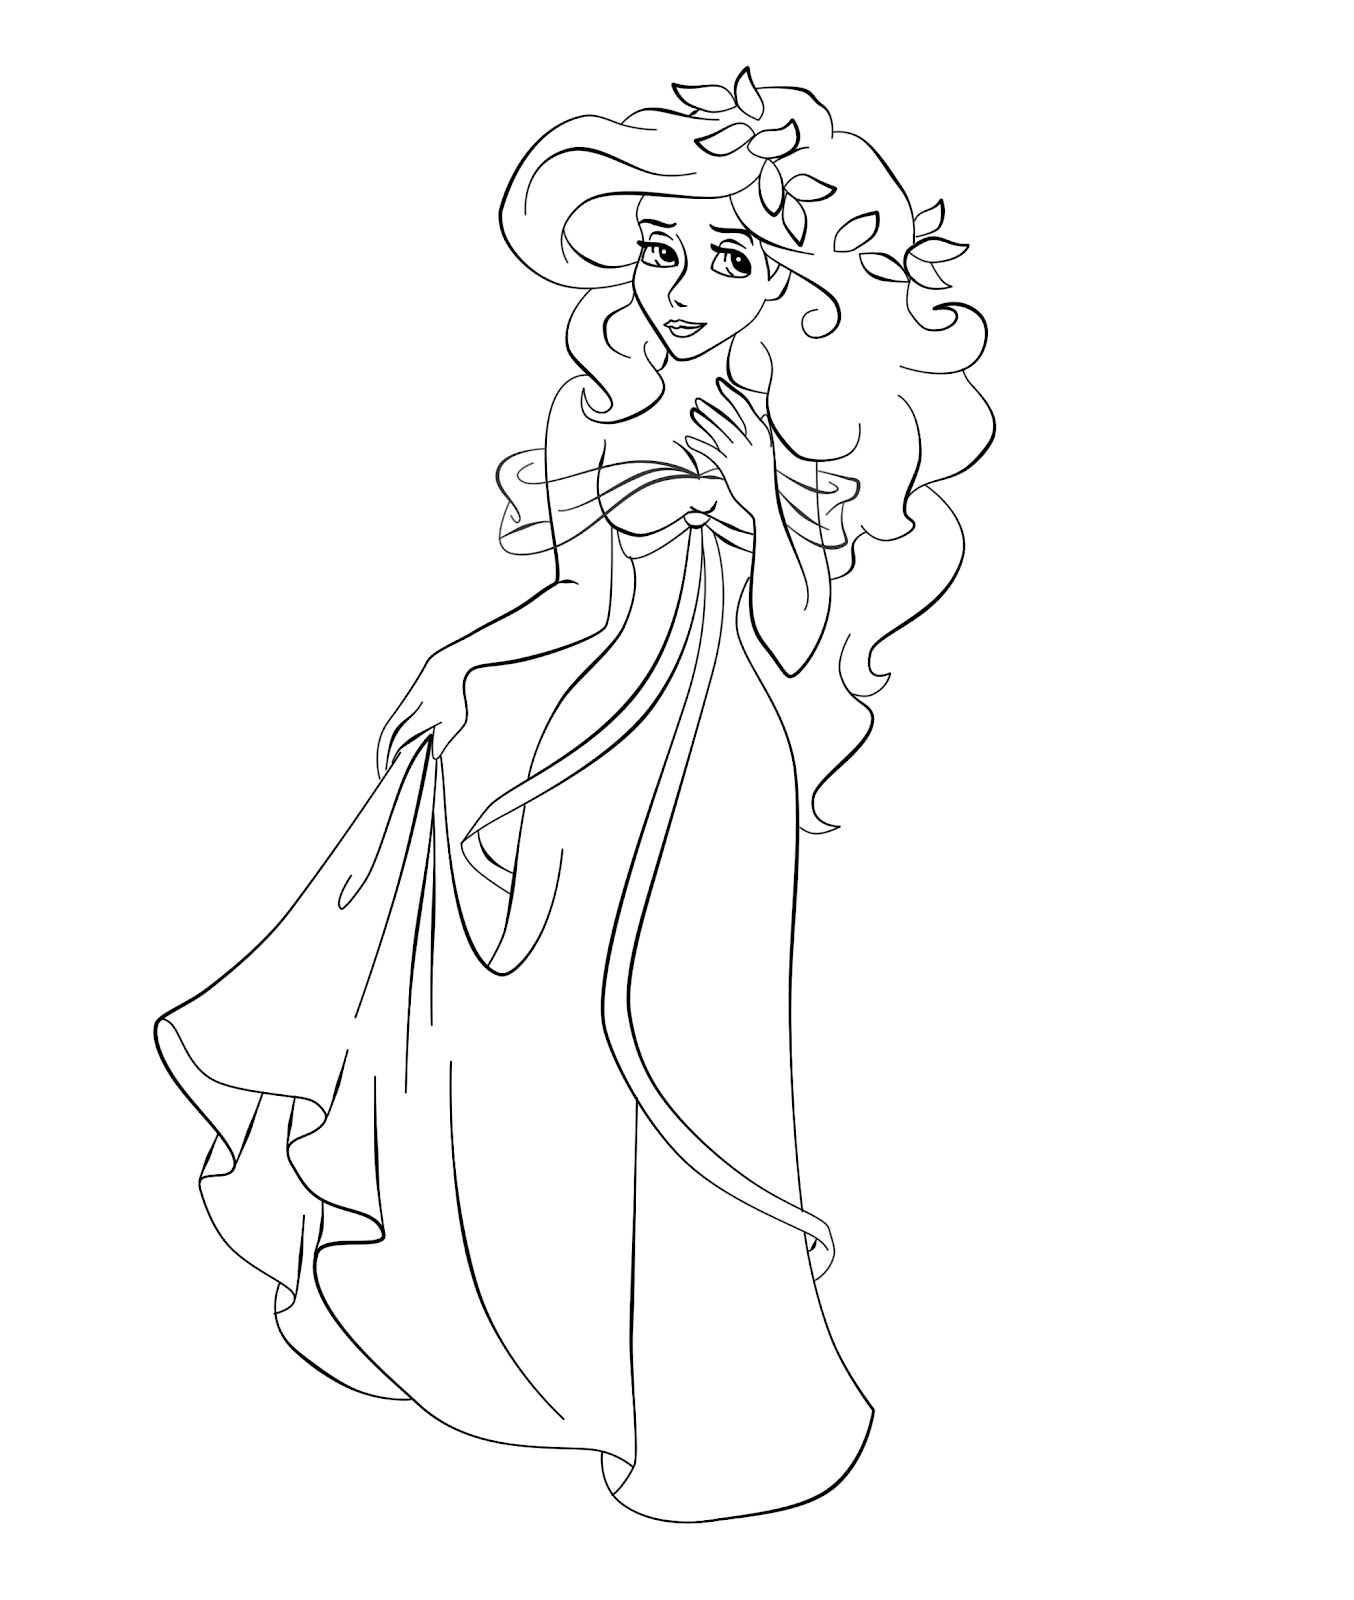 Princess Giselle Coloring Pages Disney Cartoon CharacterAll Disney Characters Christmas Coloring Pages